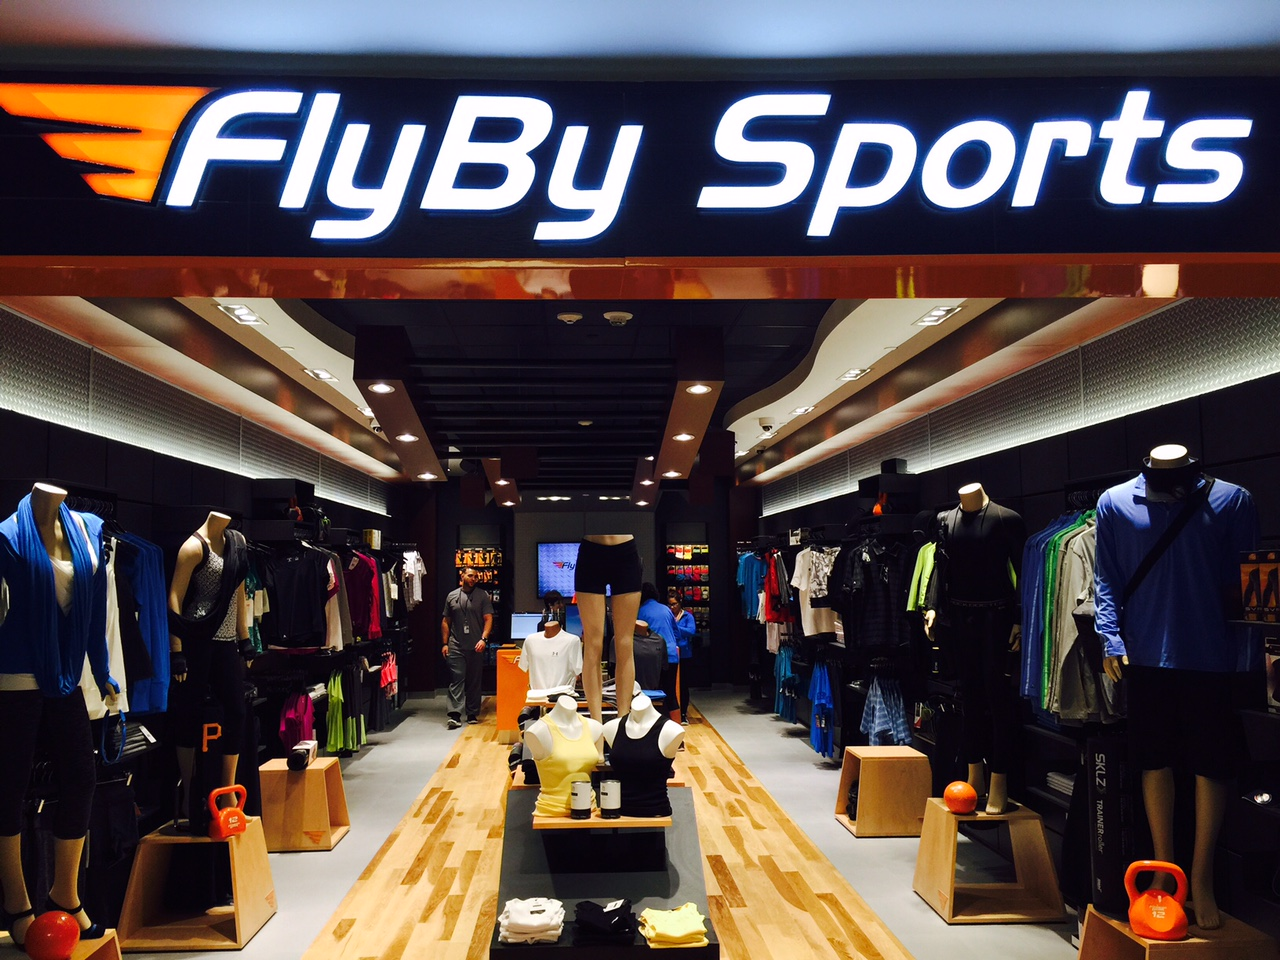 Wood Pattern interior for Fly by sports is powder coated metal.